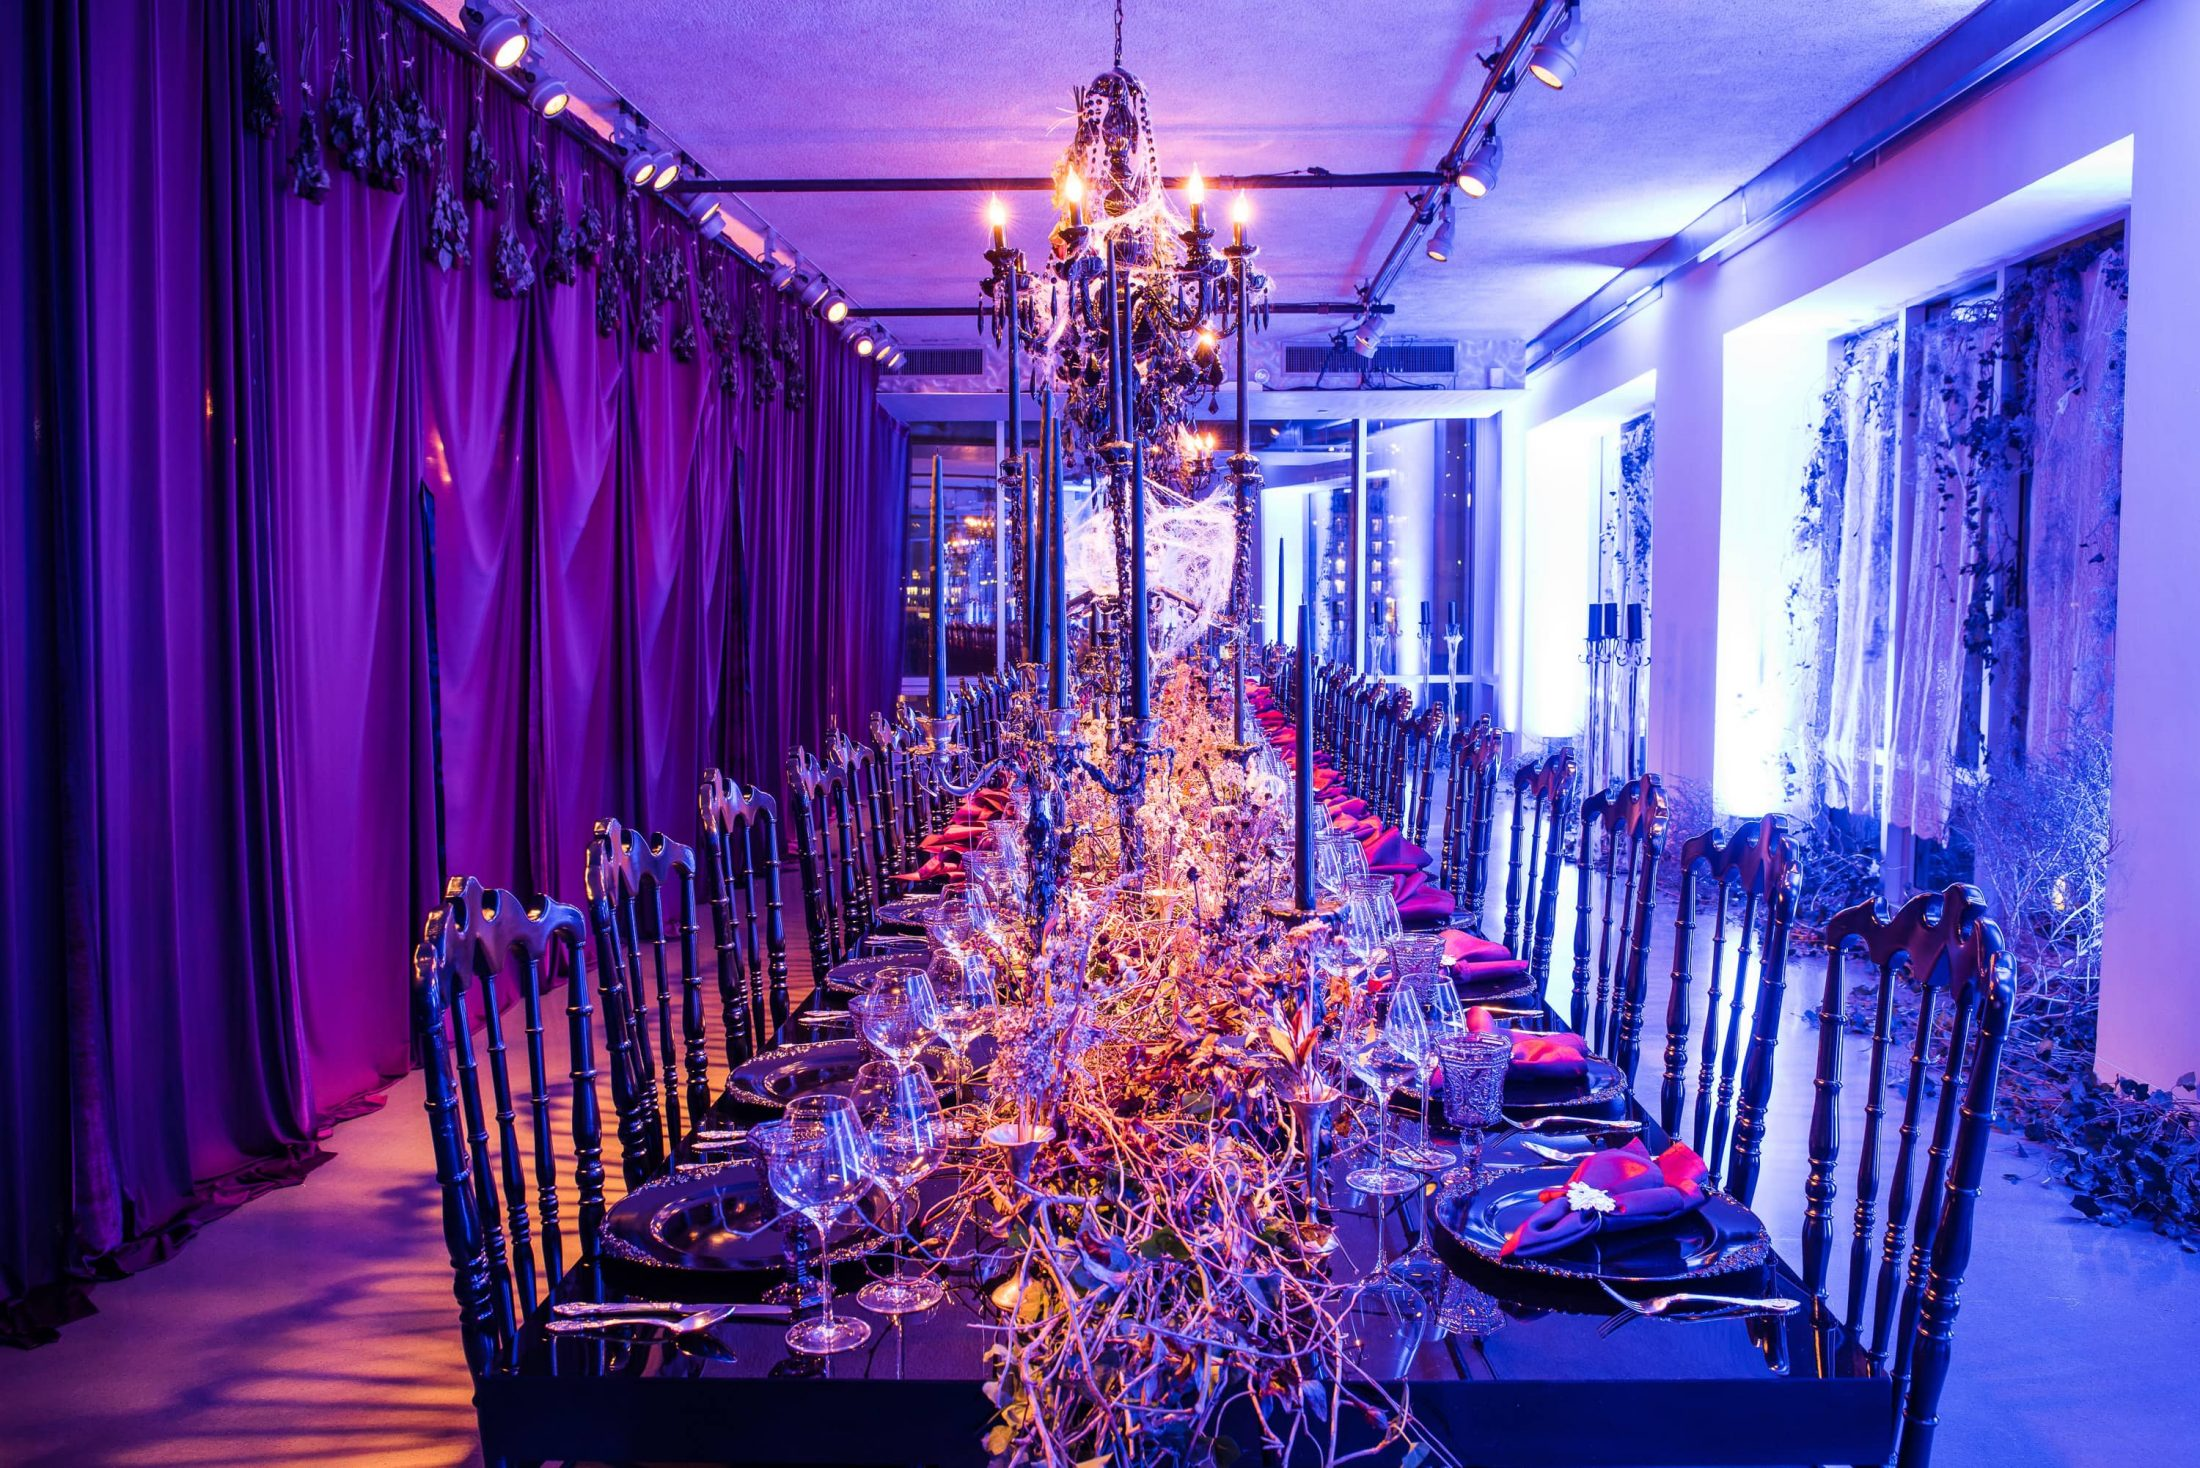 Spooky purple decor at this epic halloween party at The Standard in NYC | Photo by Gruber Photographers